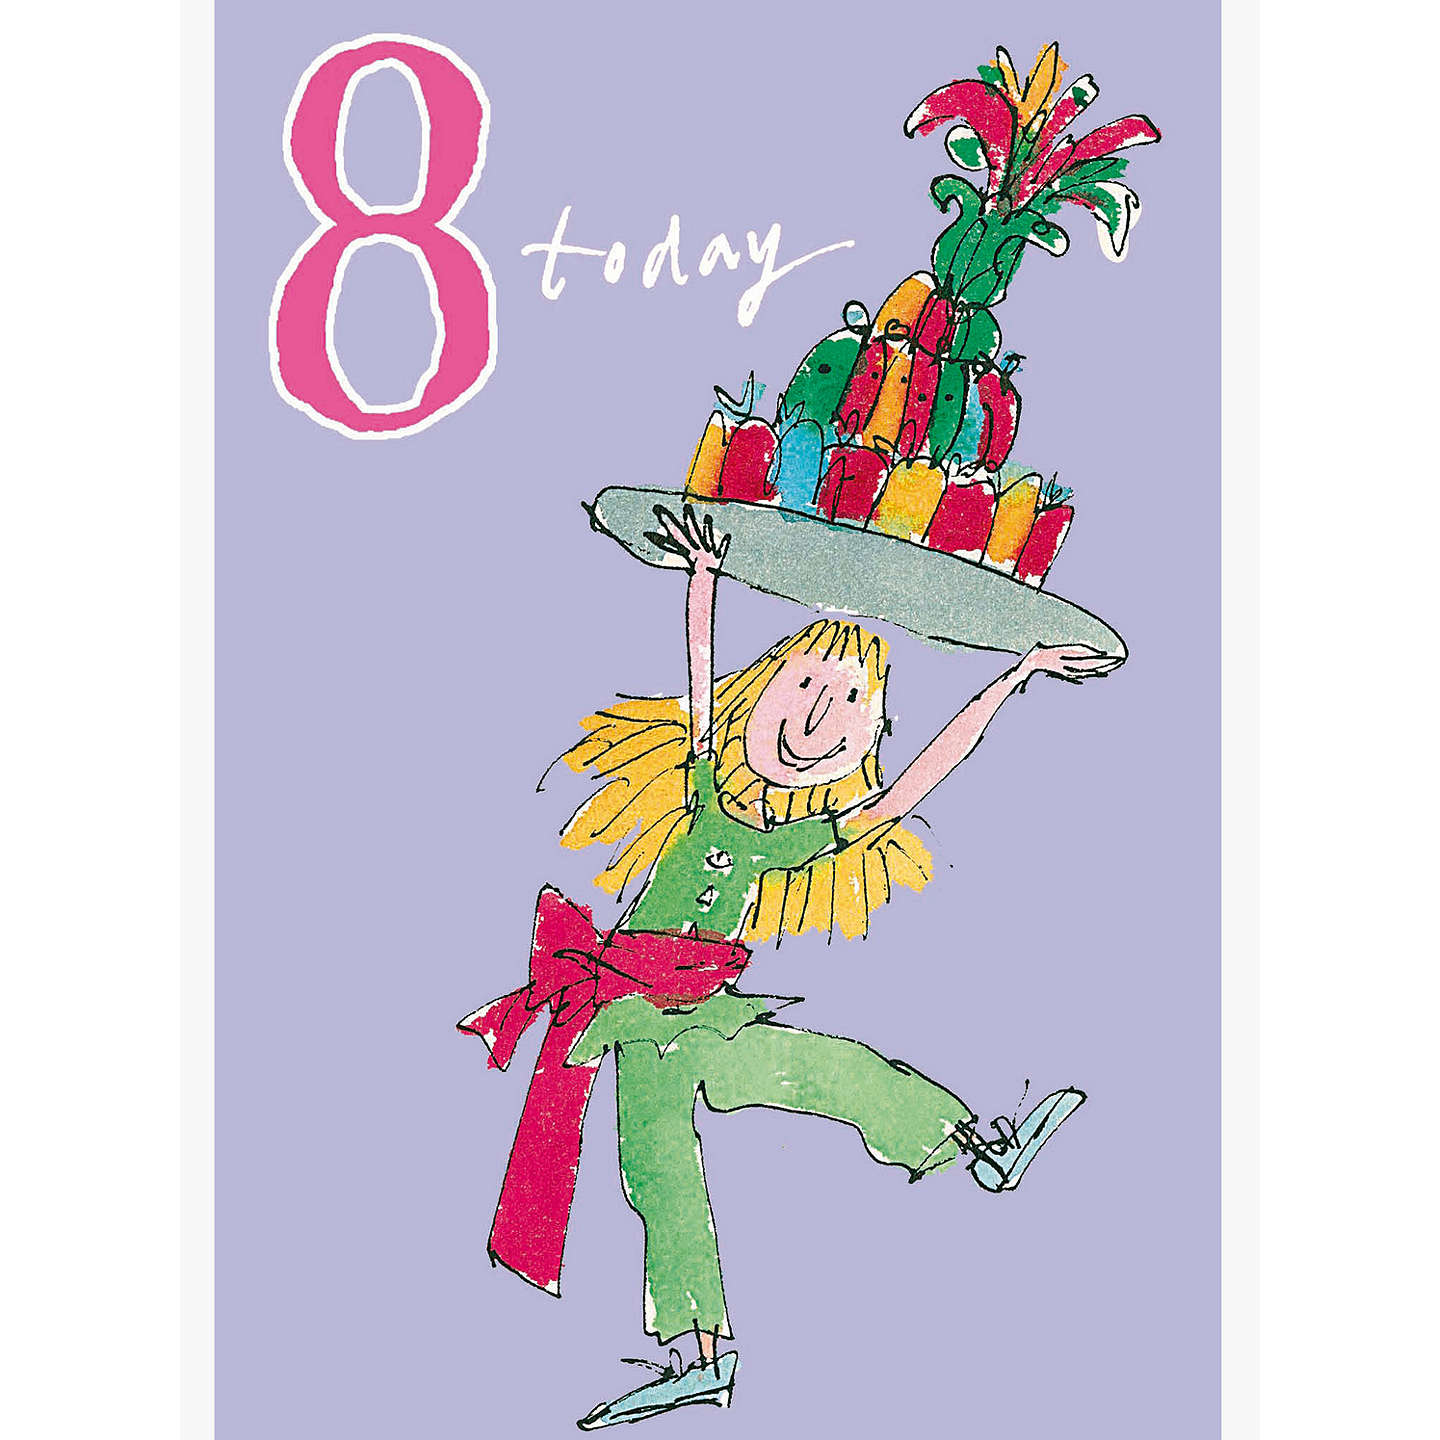 Woodmansterne jelly cake 8th birthday card at john lewis buywoodmansterne jelly cake 8th birthday card online at johnlewis bookmarktalkfo Image collections